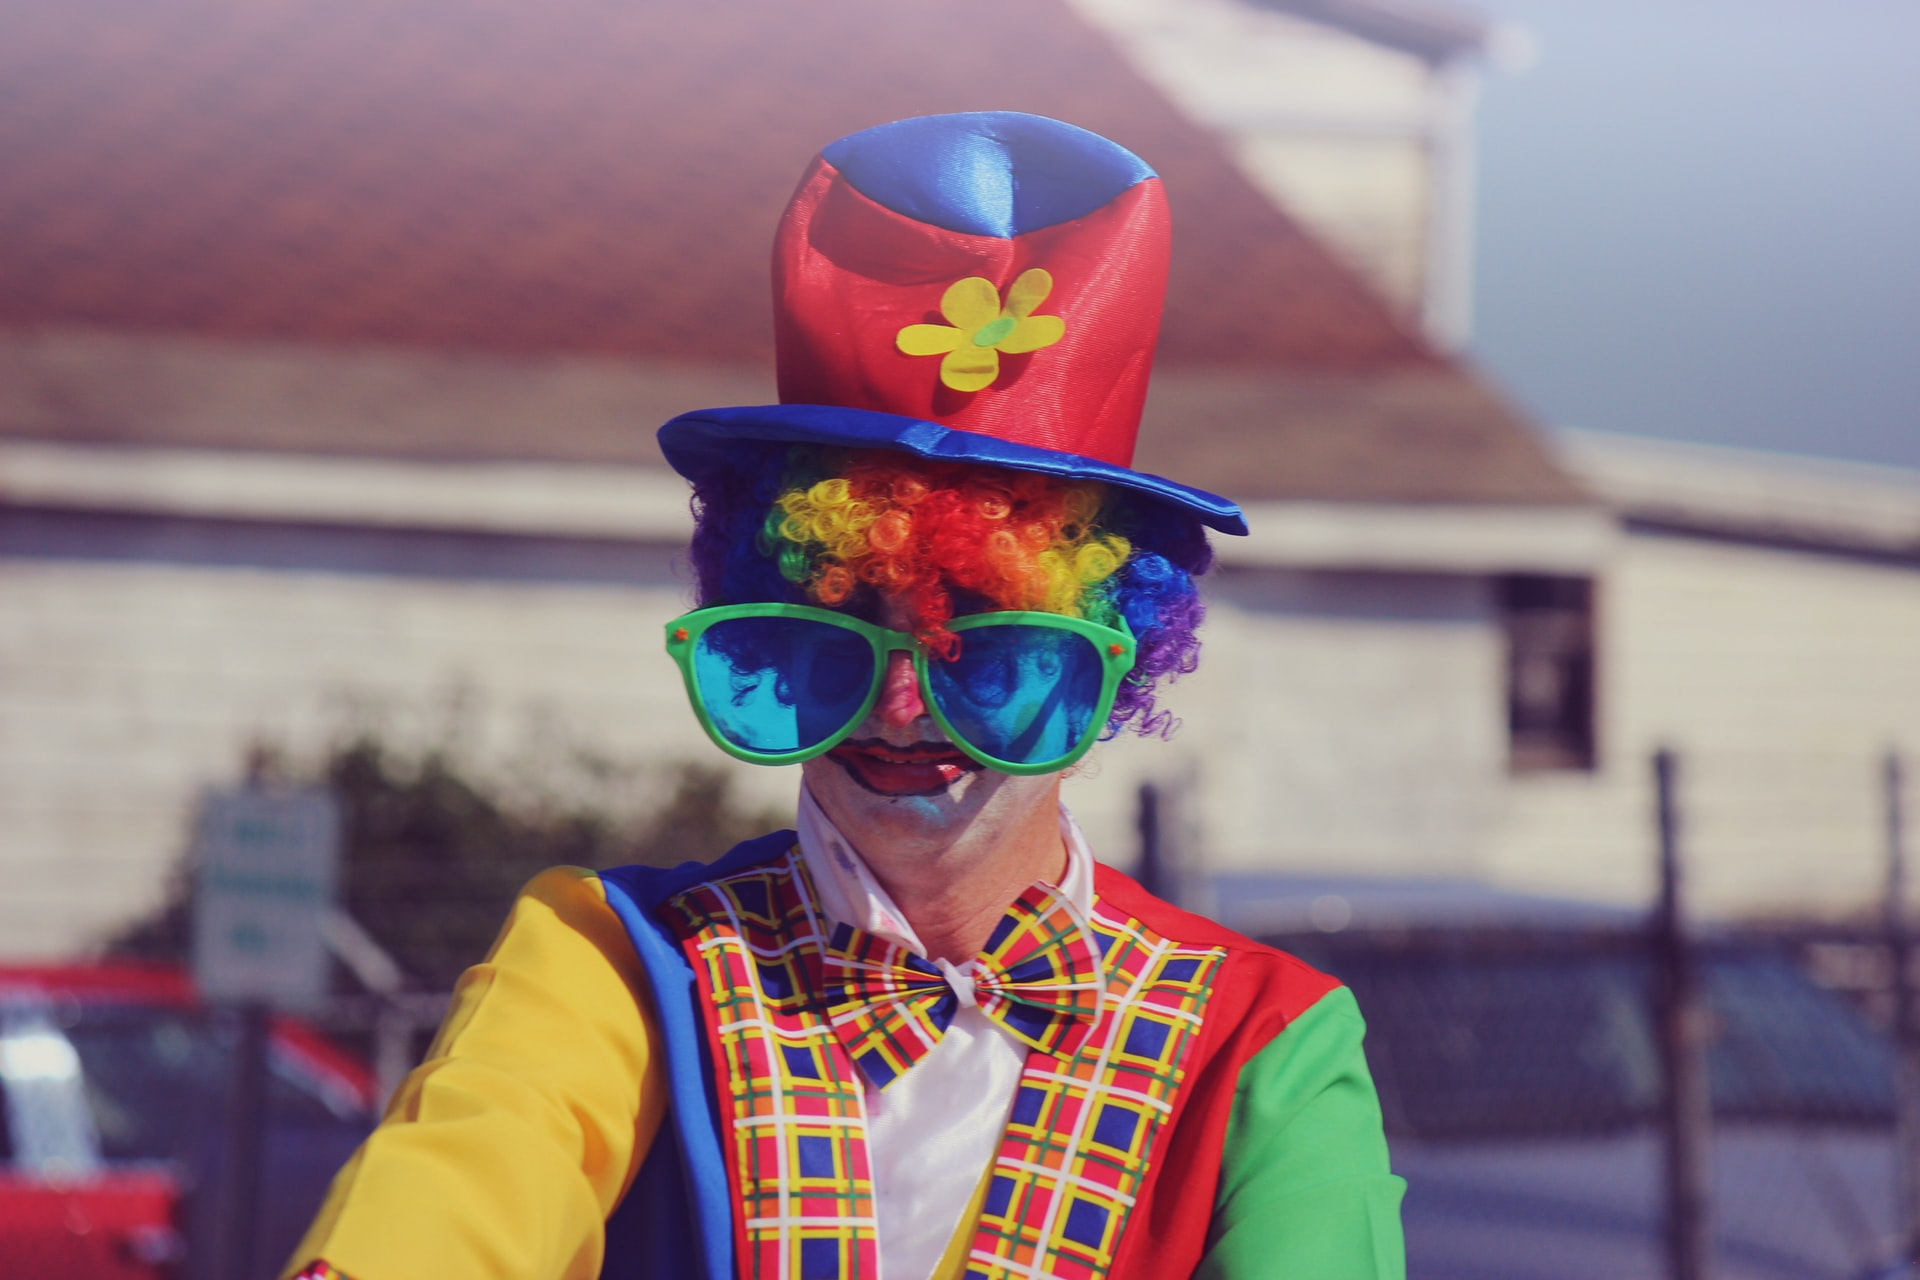 A portrait of a clown wearing a tall hat, huge glasses, and colorful clothes